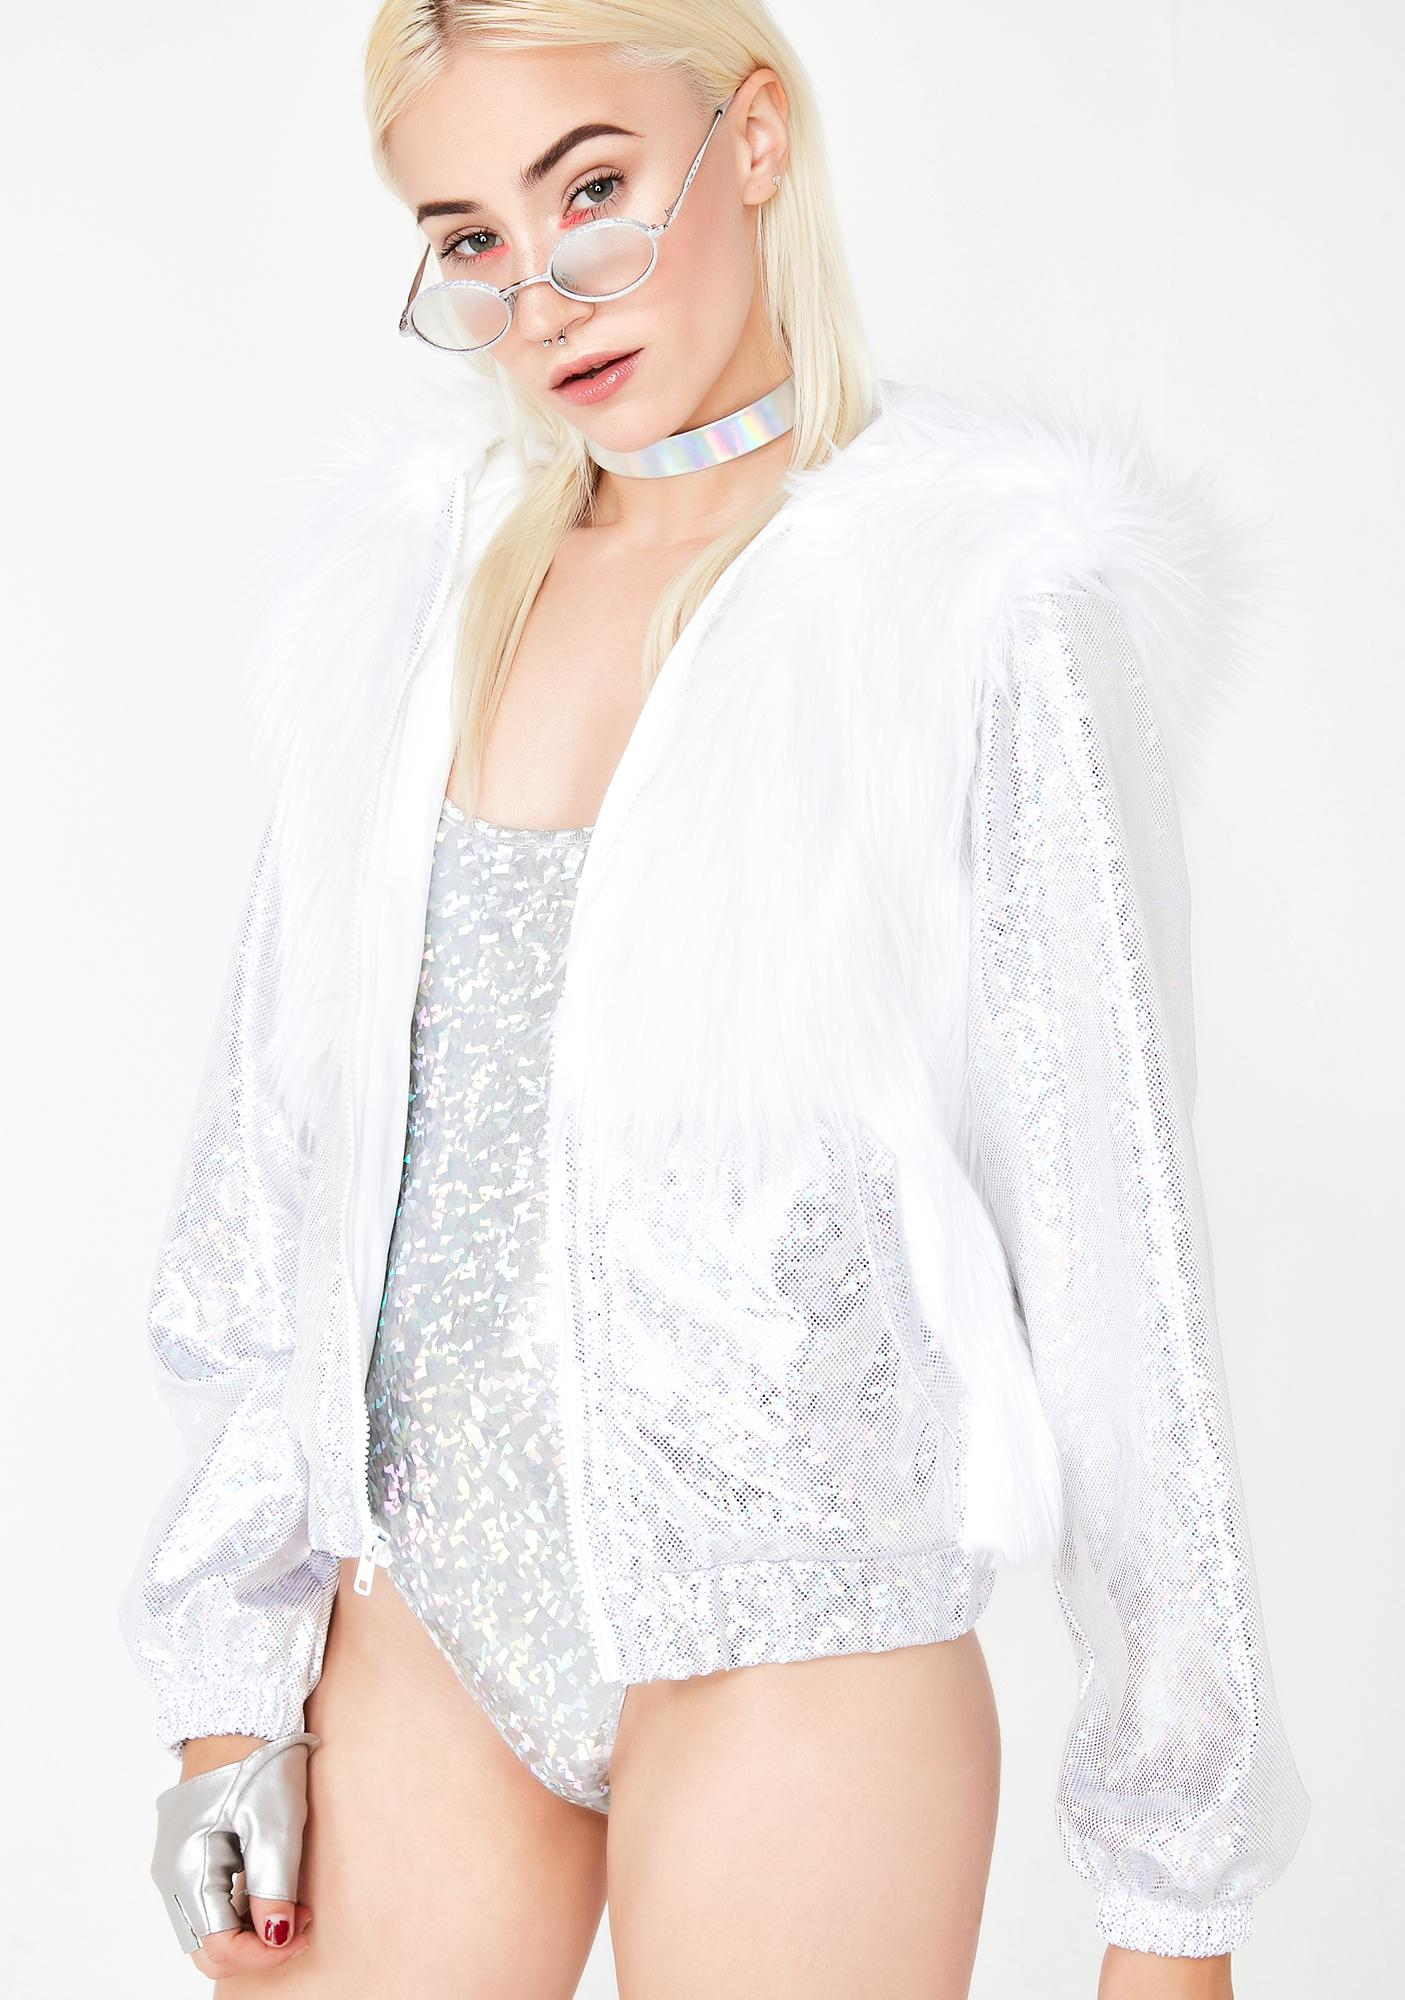 J Valentine Cosmic Archangel Light Up Coat